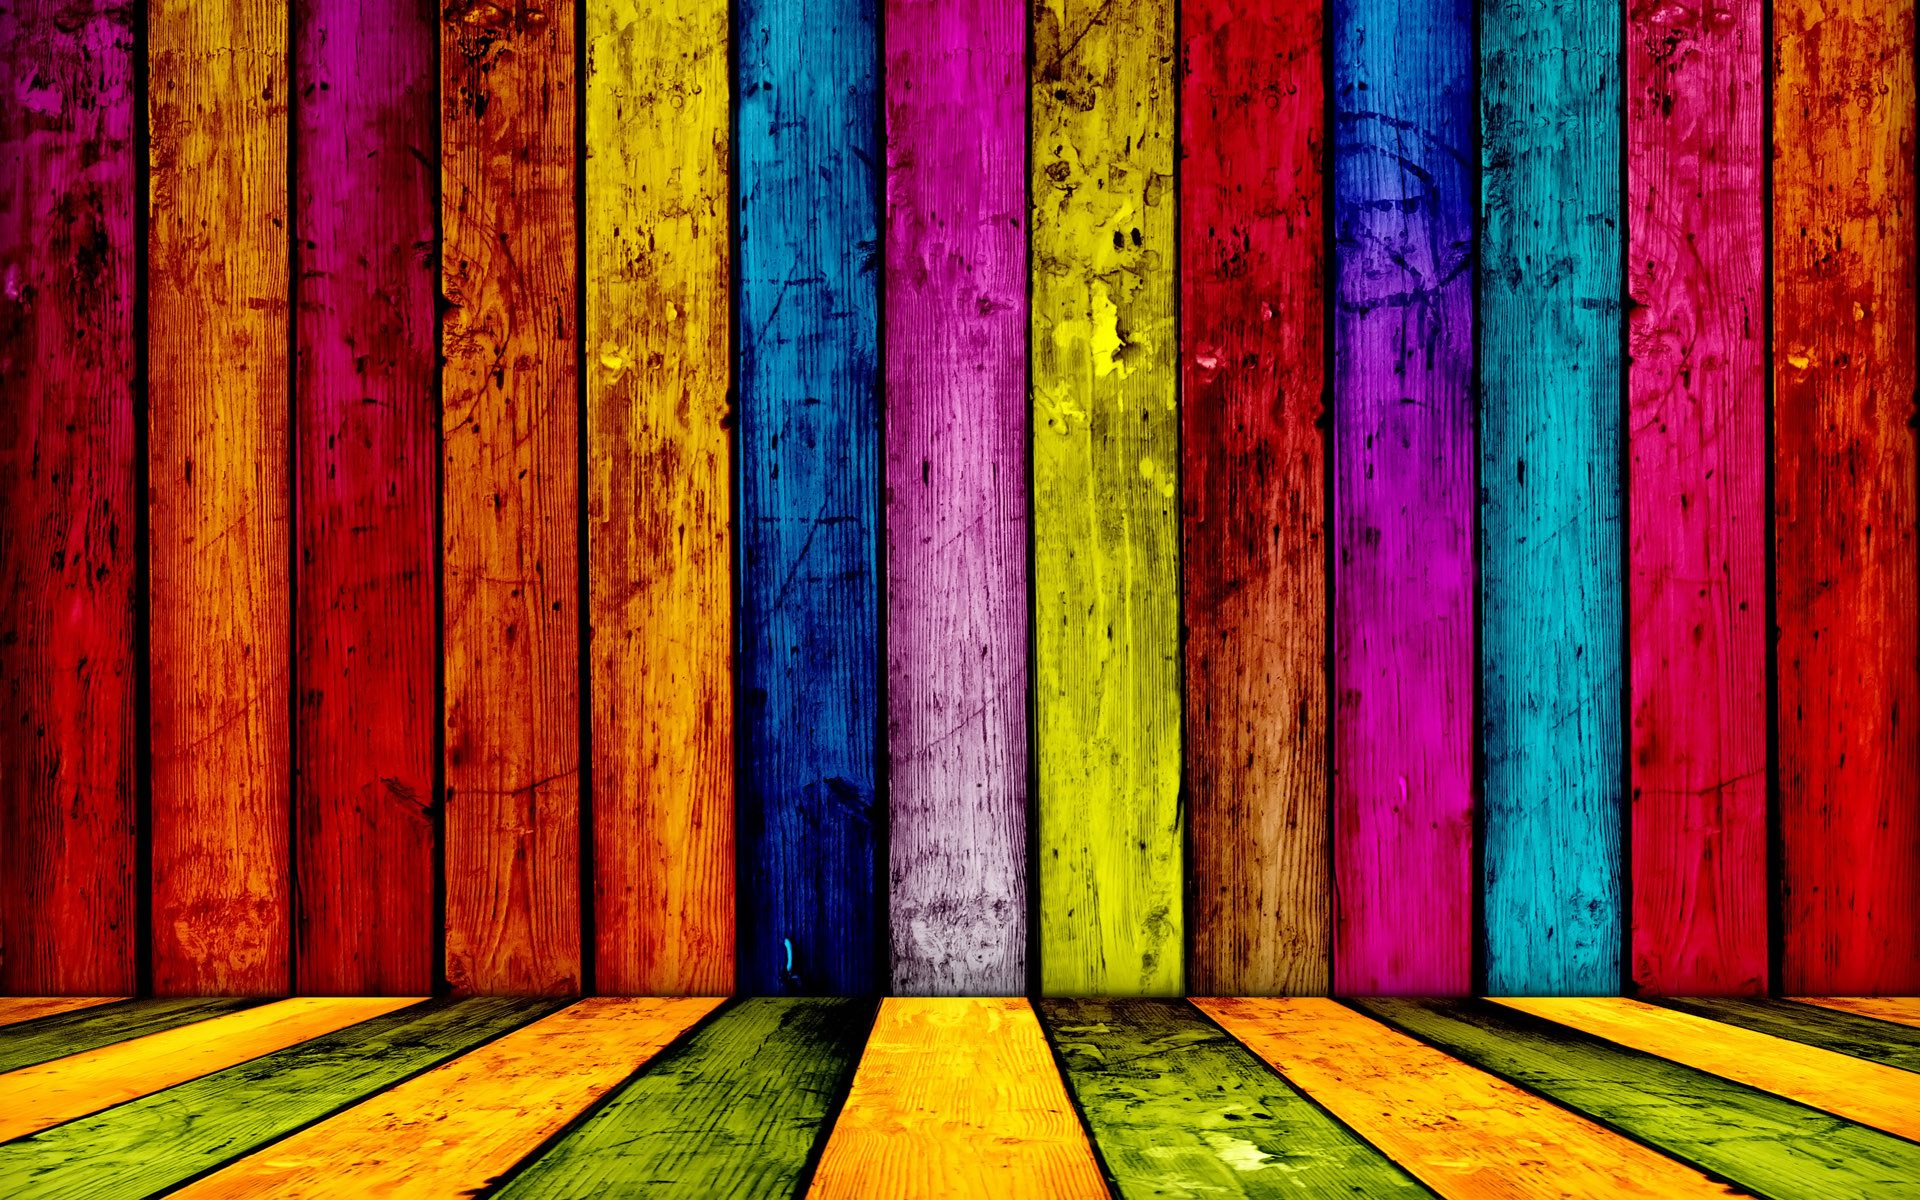 Cool Colorful Wallpaper Backgrounds: 35 Free Colorful Backgrounds